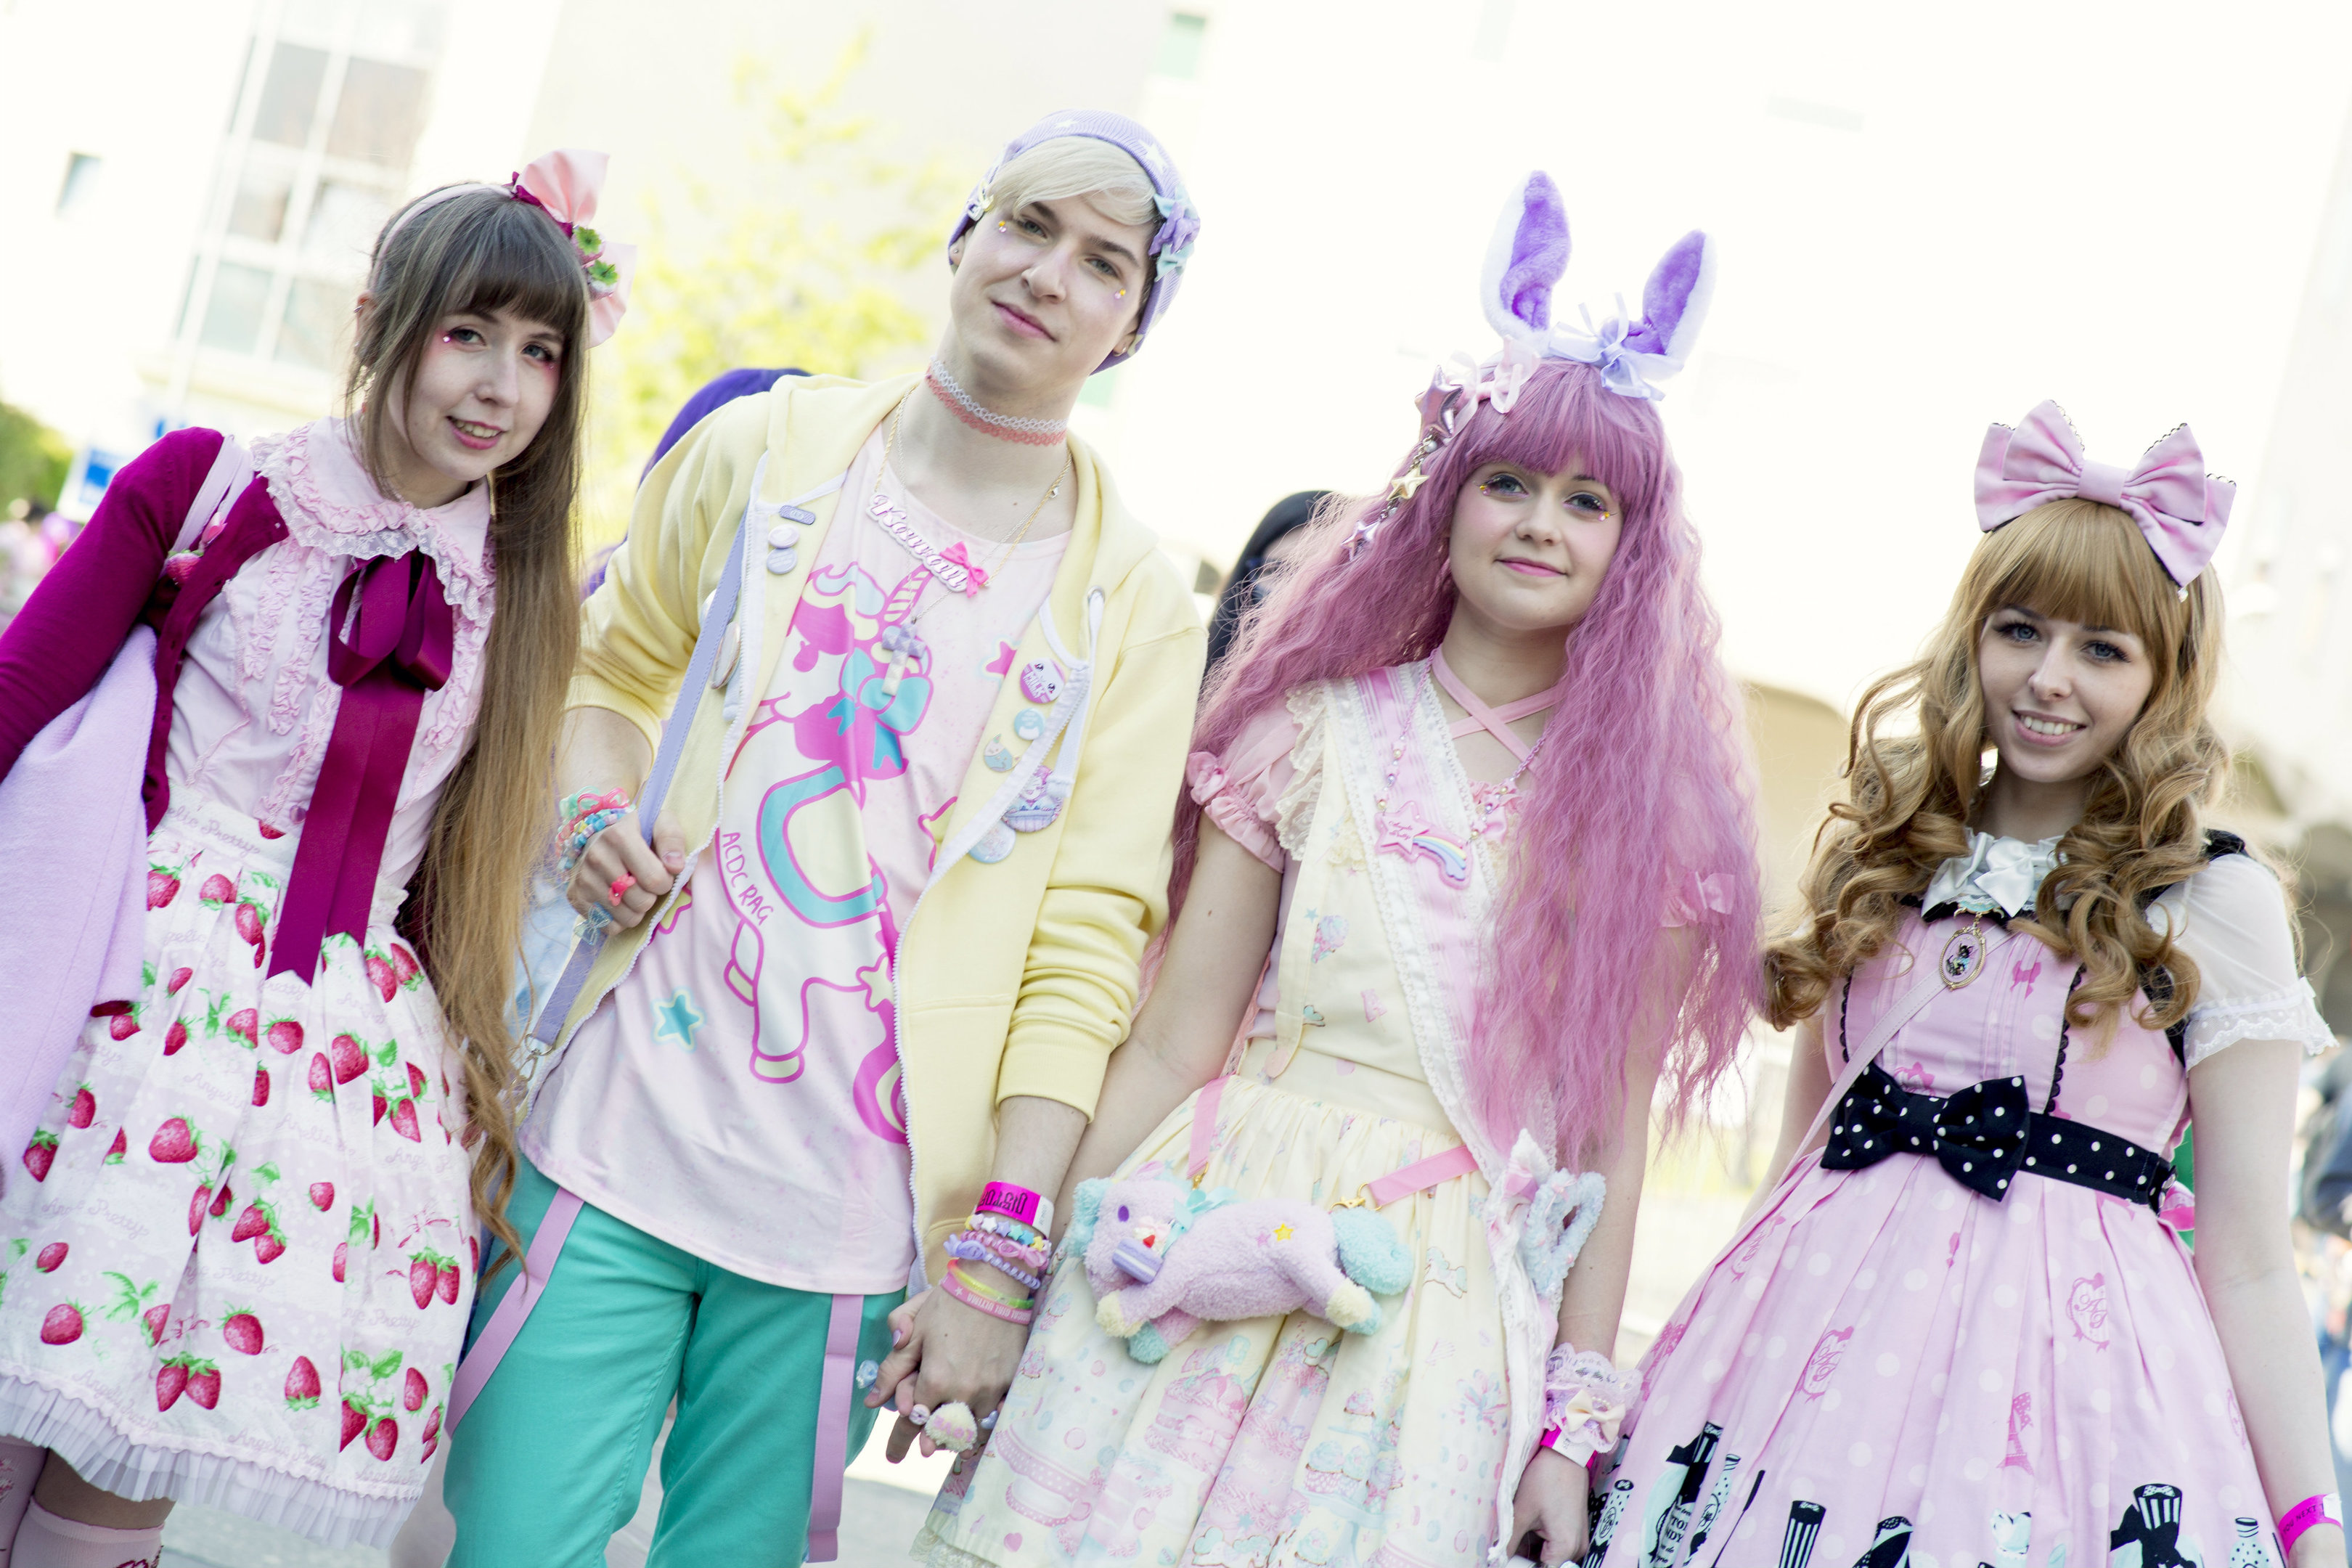 Participants in last year's DeeCon. Photo courtesy of Dundee University.